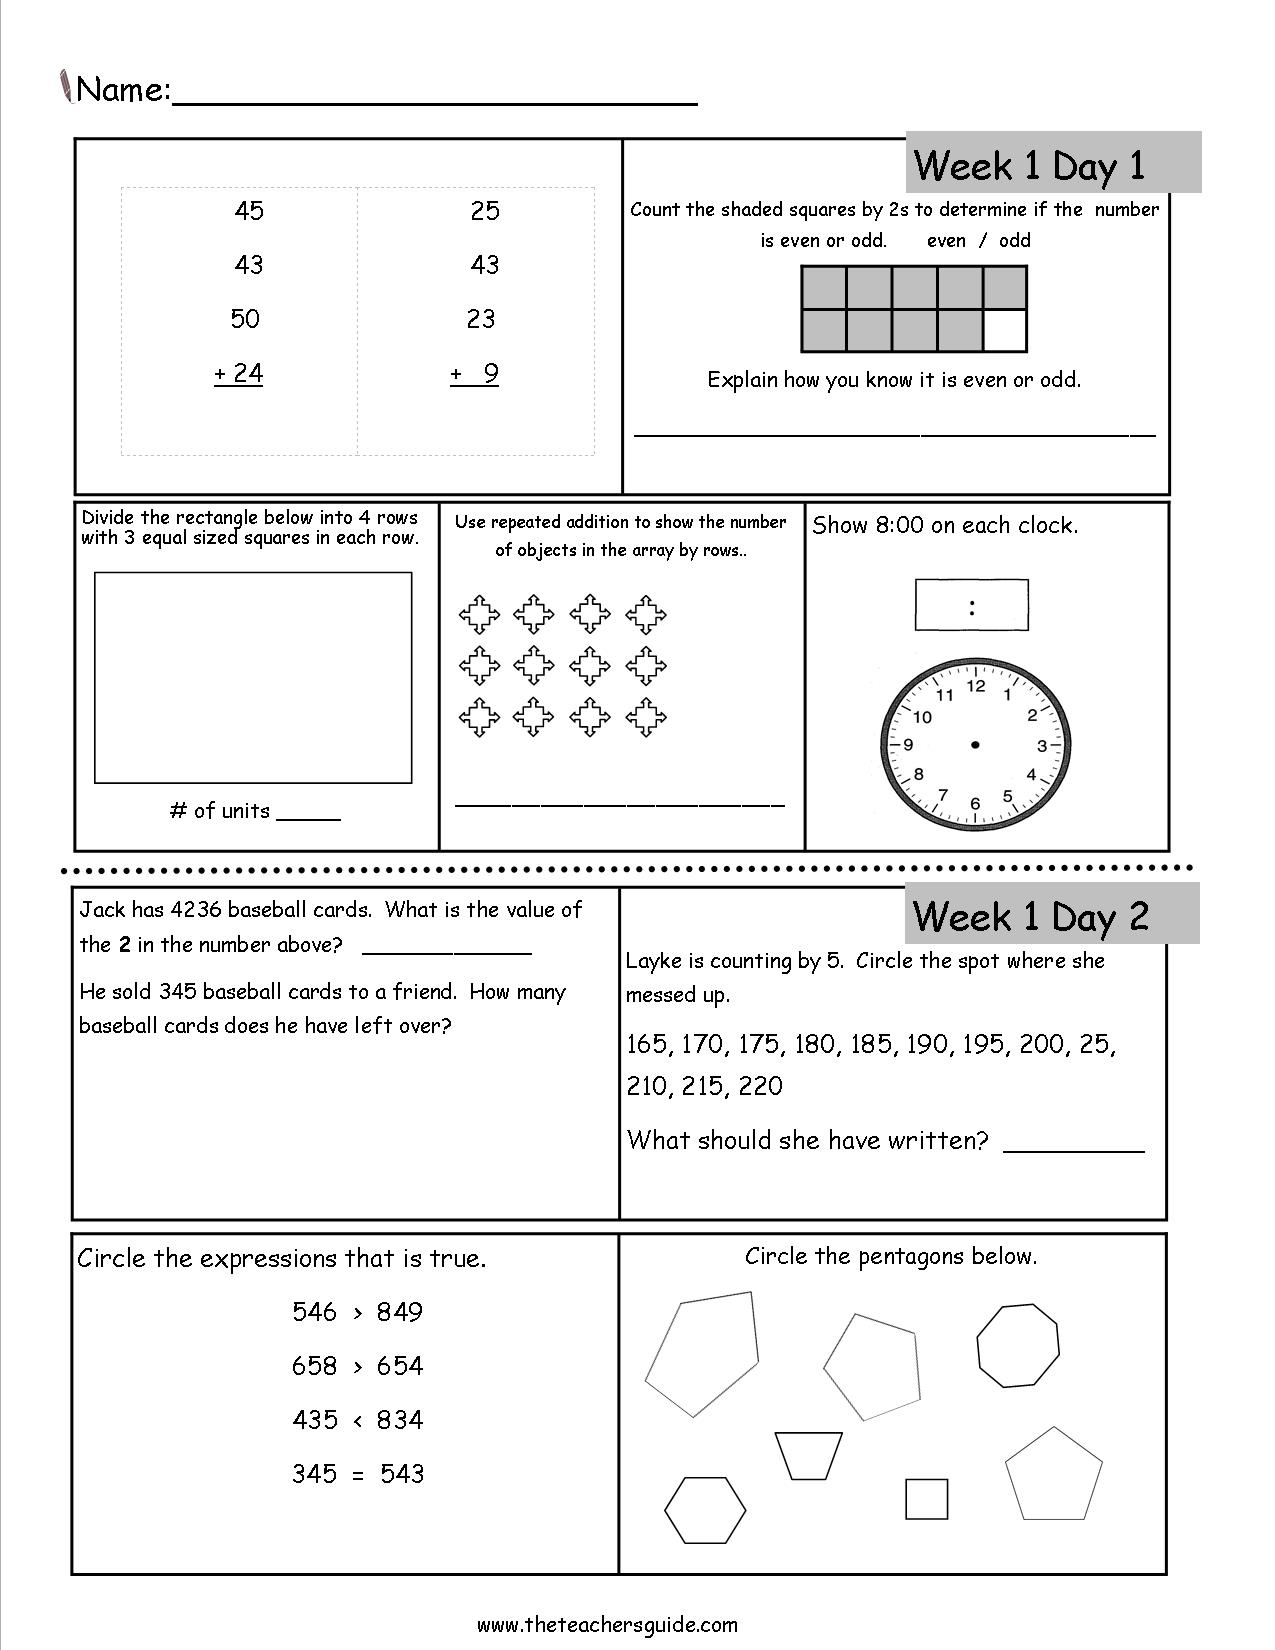 Free 3Rd Grade Daily Math Worksheets - Free Printable 4Th Grade Morning Work